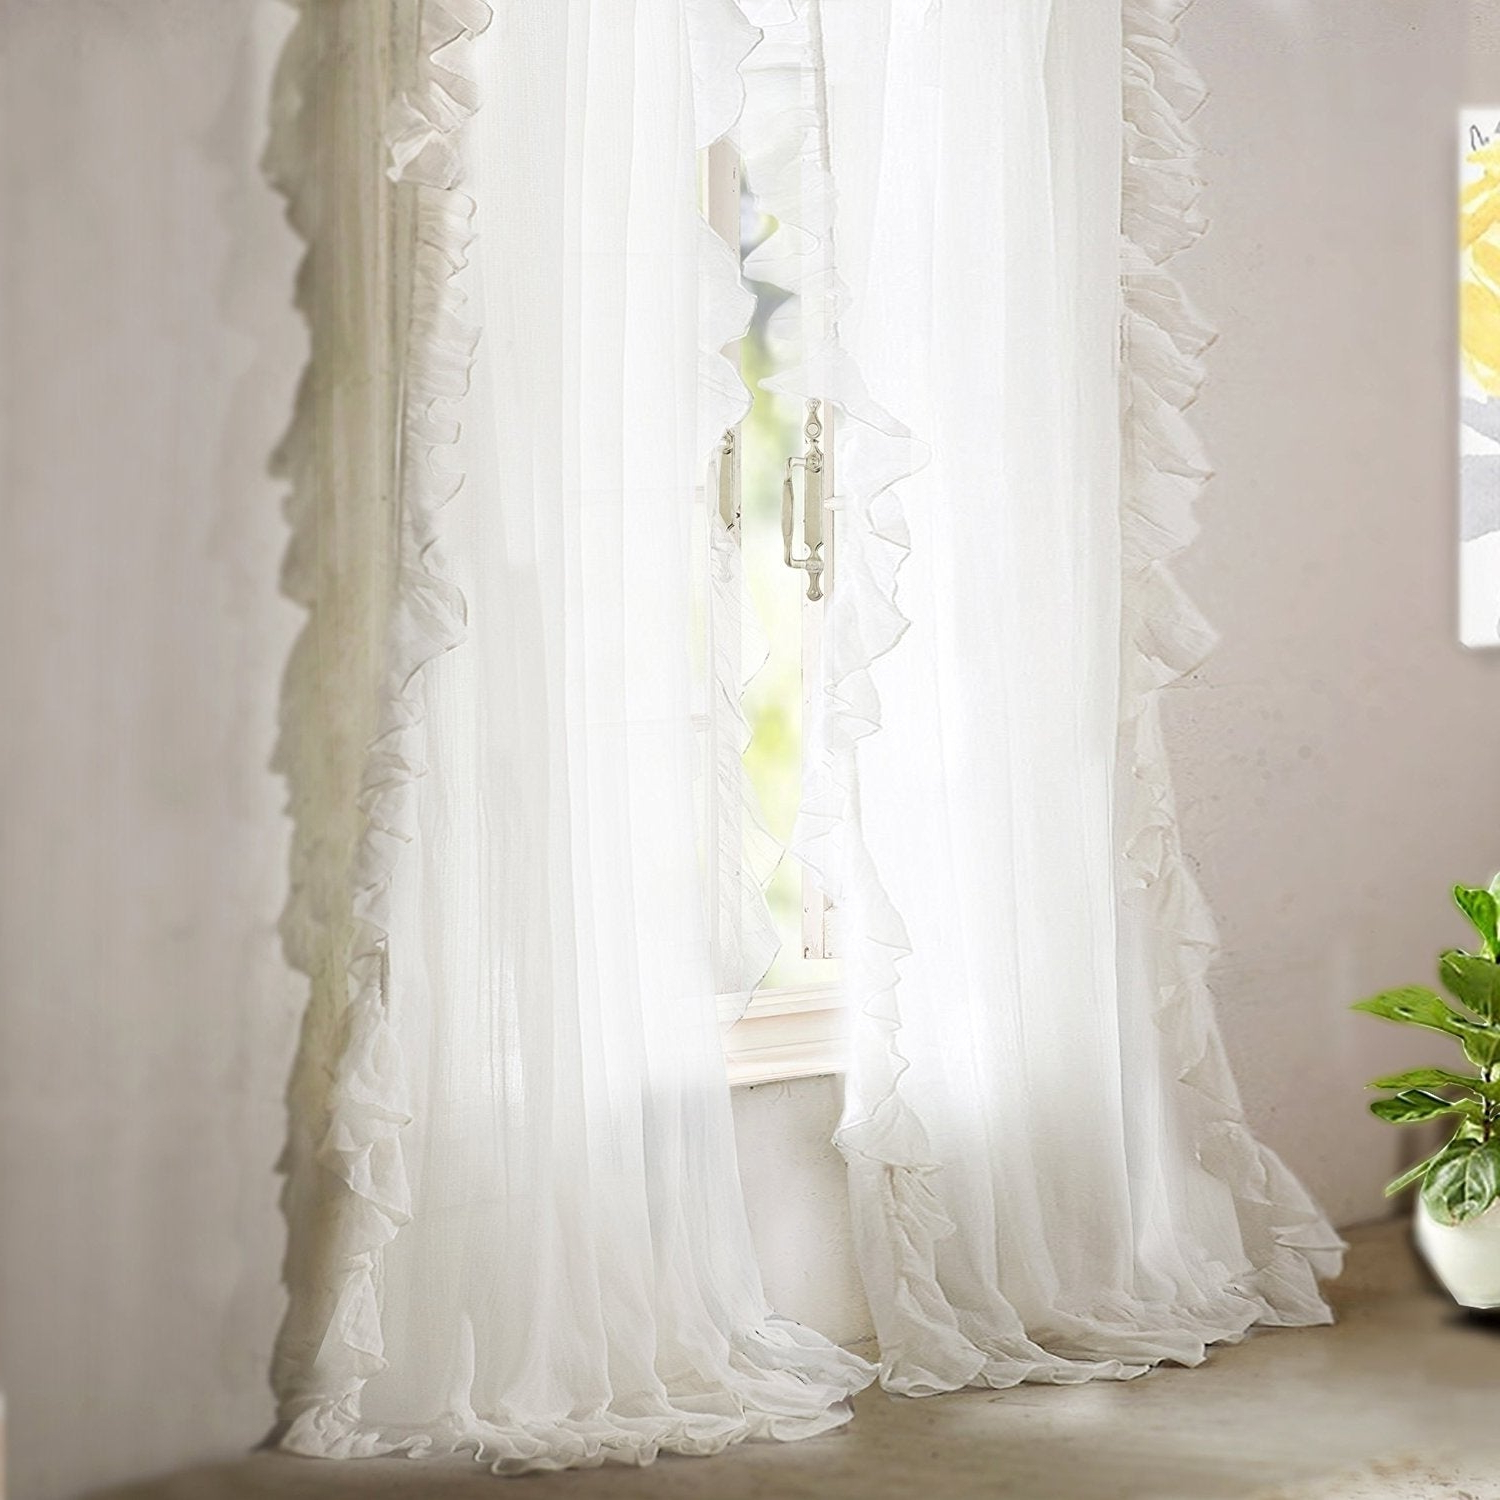 Driftaway Sophie Sheer Voile Ruffle Edge Window Curtain Panel Pair With Best And Newest Sheer Voile Ruffled Tier Window Curtain Panels (View 3 of 20)